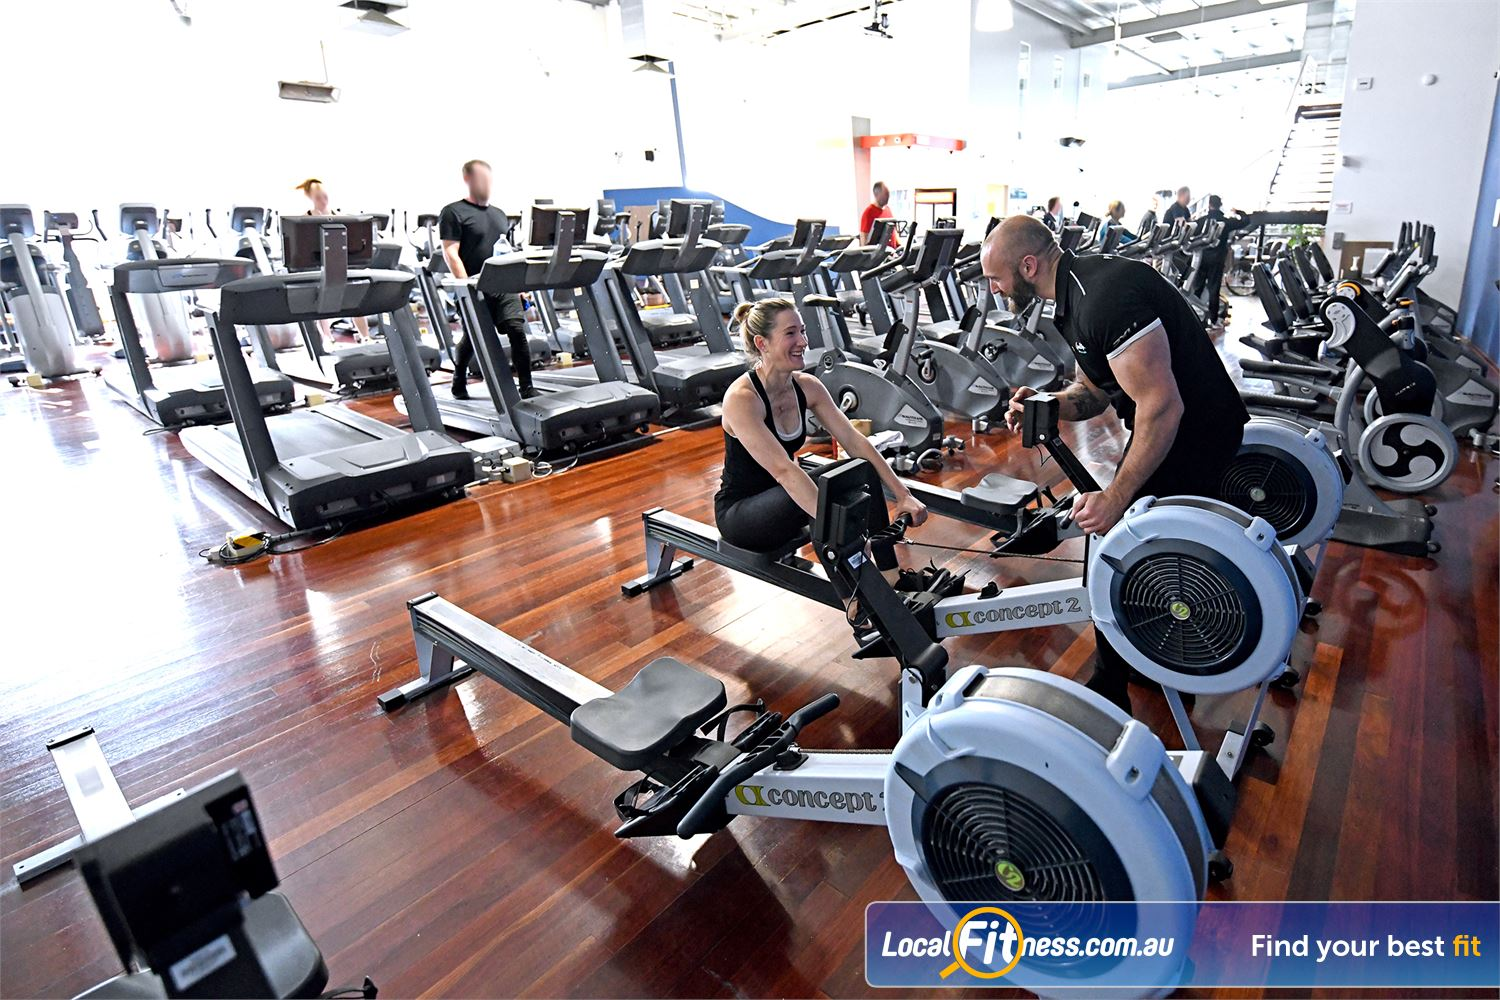 Goodlife Health Clubs Near Moolap Try cardio rowing for an extra fitness boost.